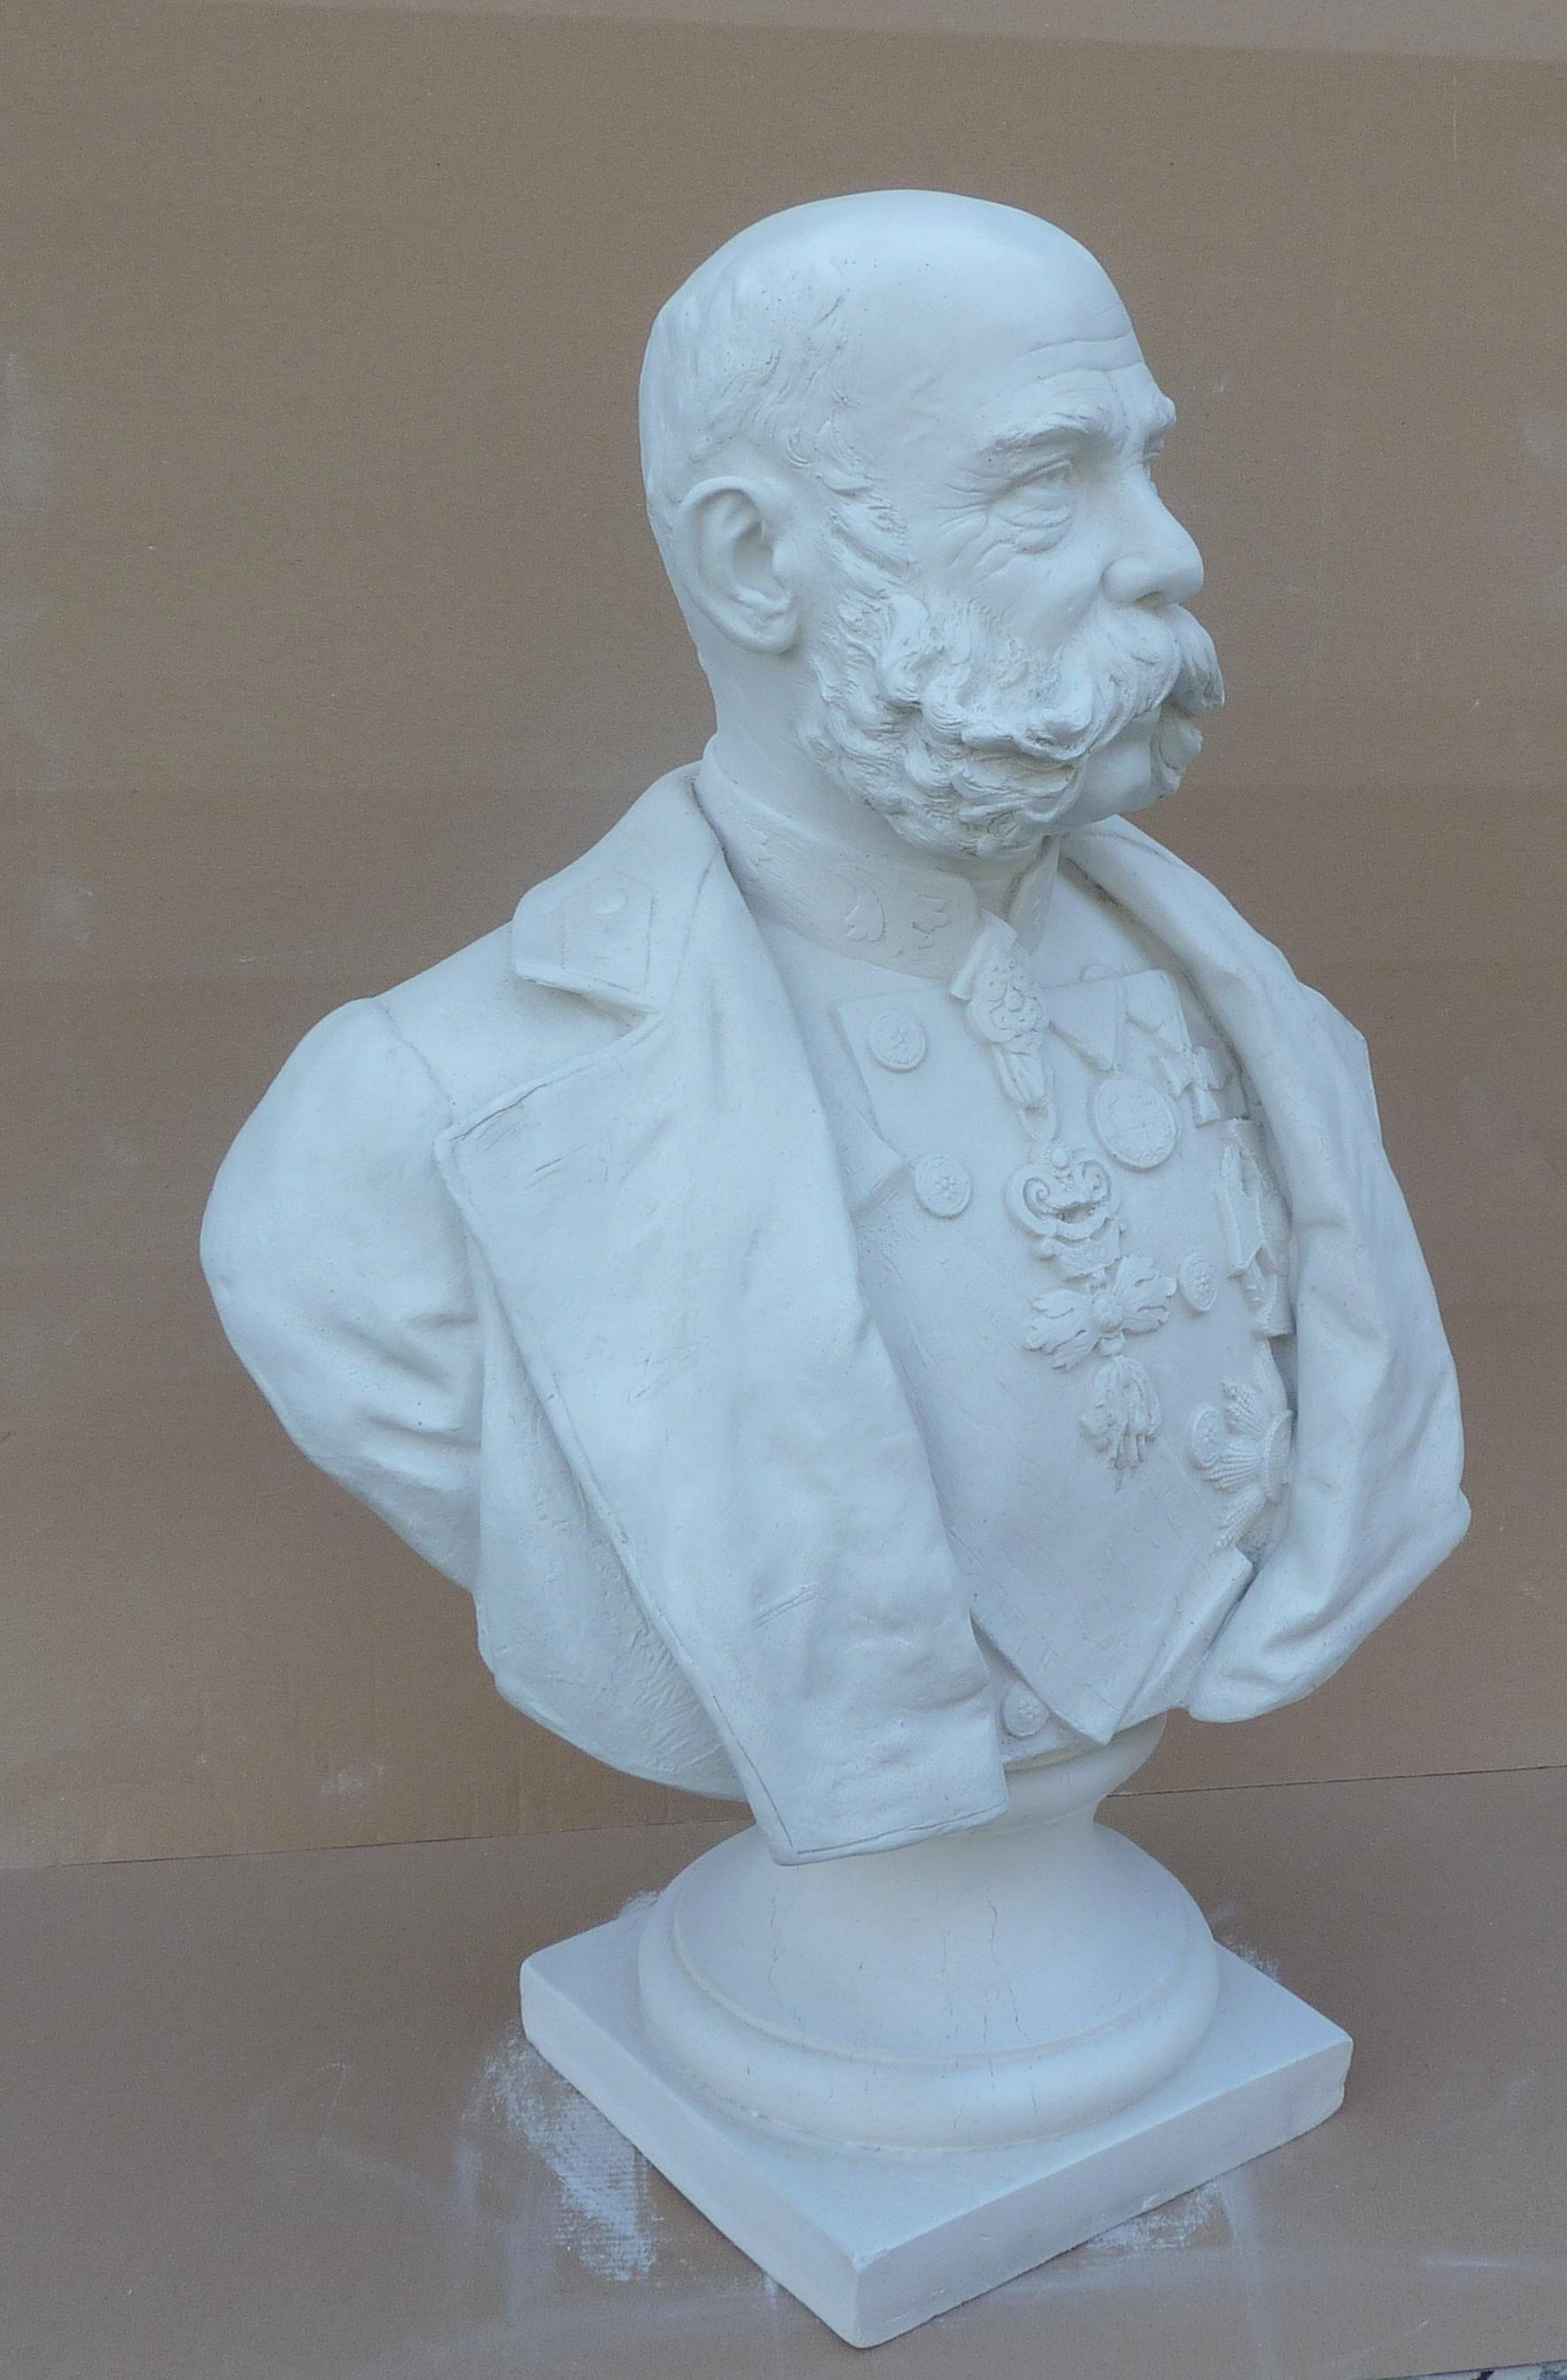 1. Bust of Franz Joseph on a pedestal